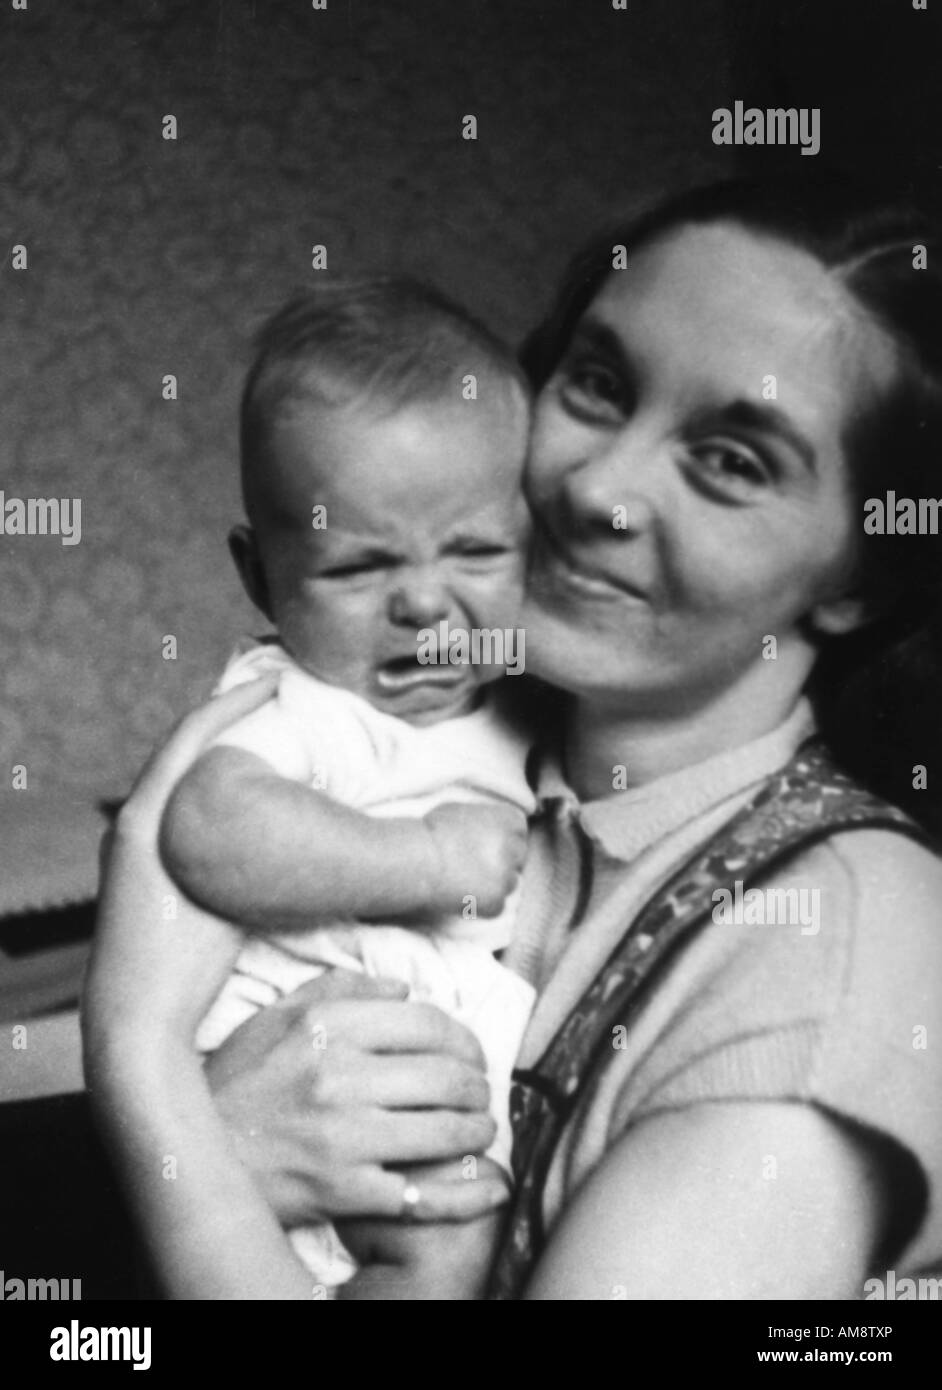 Alte Vintage Black And White Family Snapshot Foto Junge Mutter